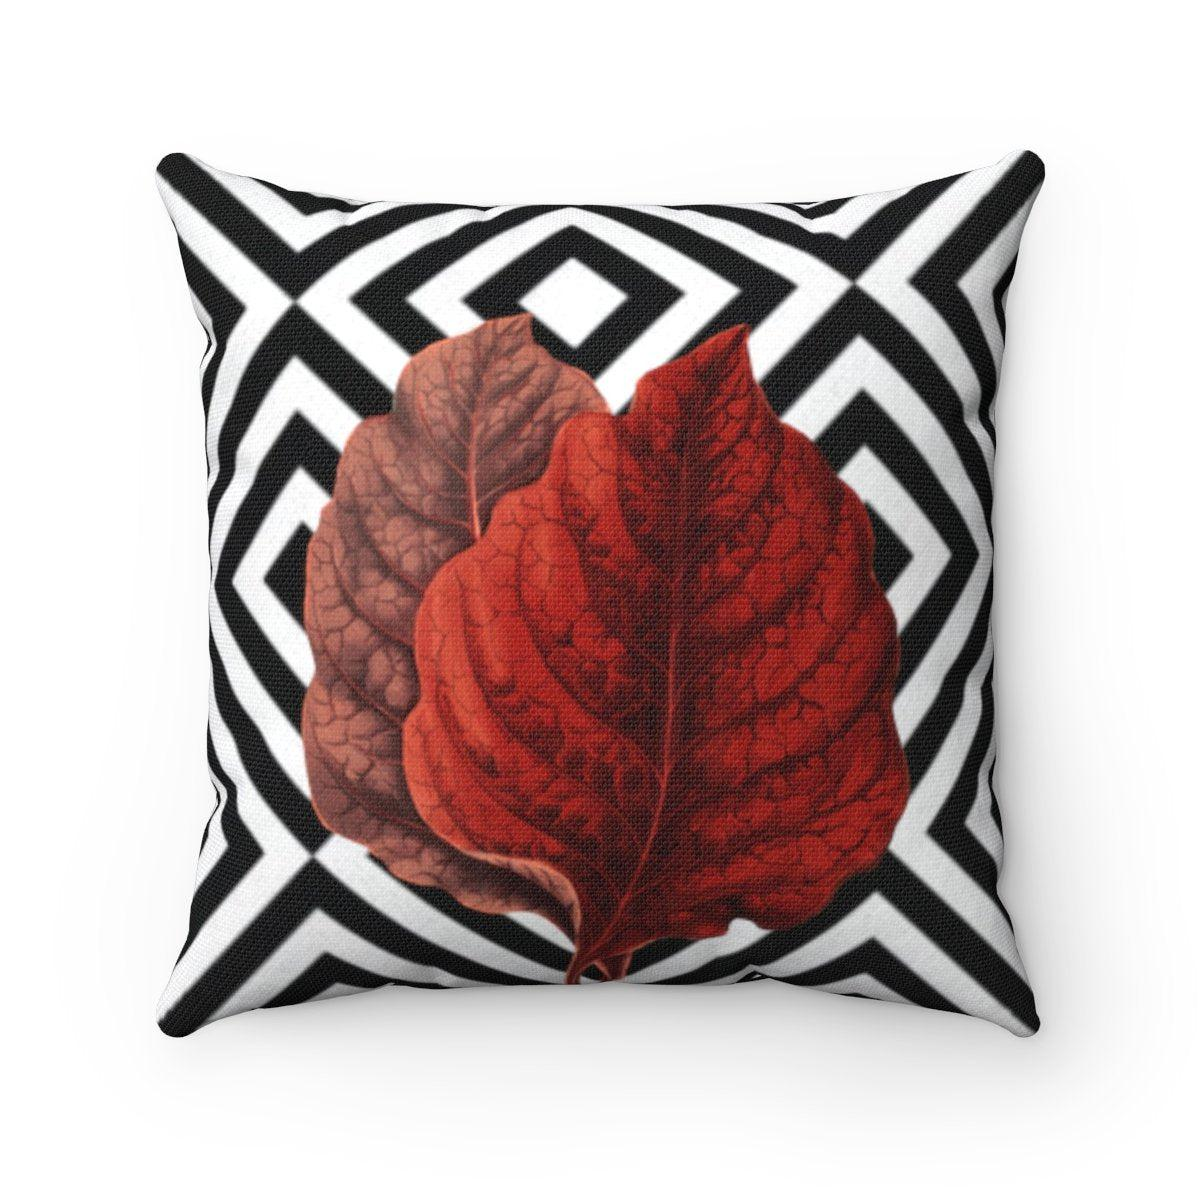 Luxury leaves | floral abstract decorative cushion cover-Home Decor - Decorative Accents - Pillows & Throws - Decorative Pillows-Maison d'Elite-14x14-Très Elite